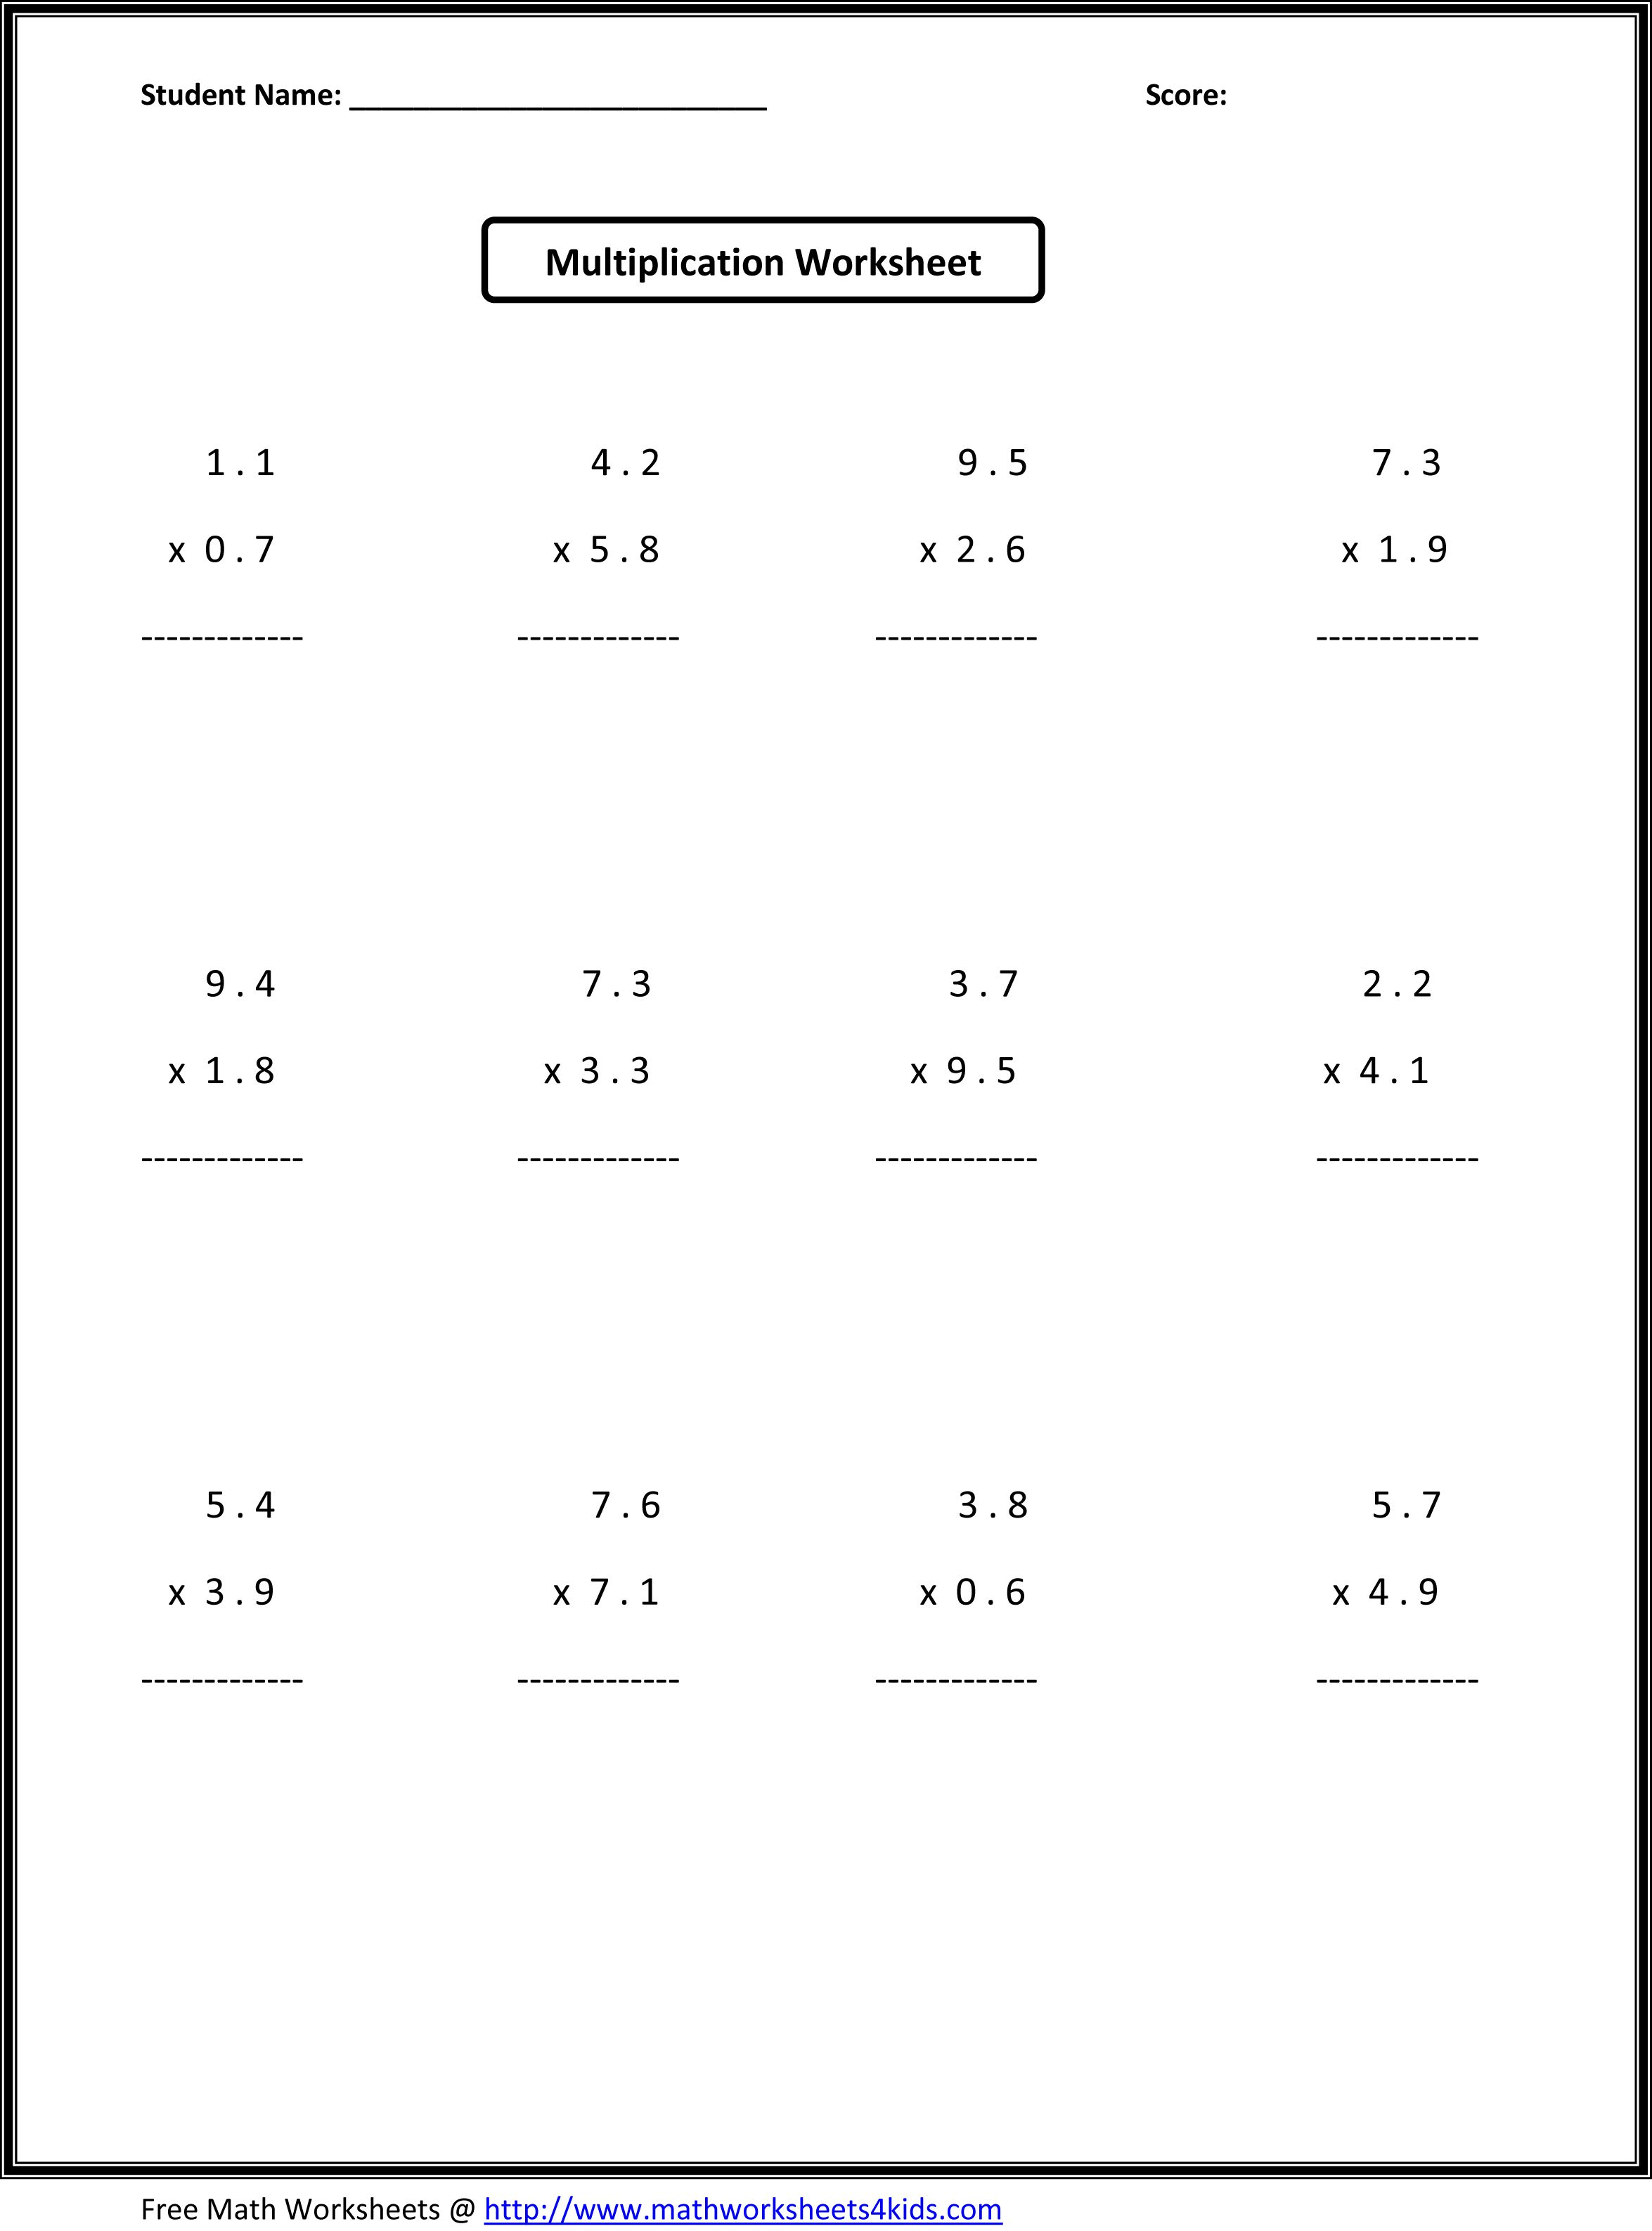 Math Worksheets 6th Grade Printable Yourhelpfulelf – Ratio Worksheets 6th Grade